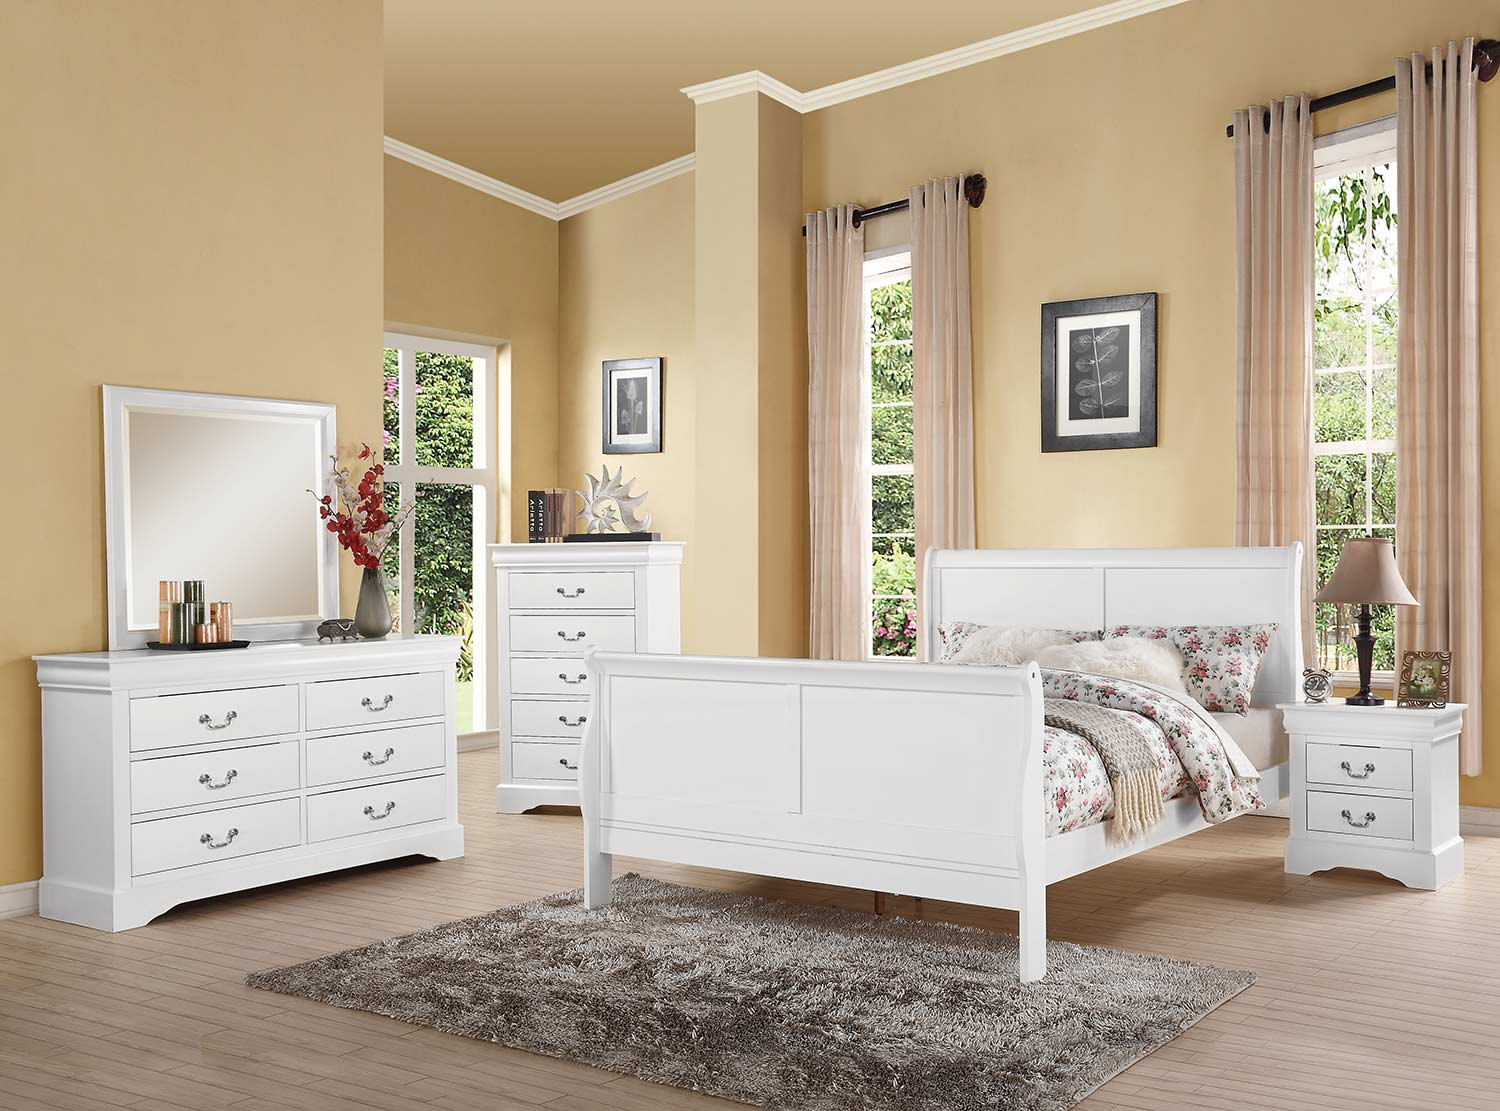 Acme Louis Philippe III Bedroom Set - White